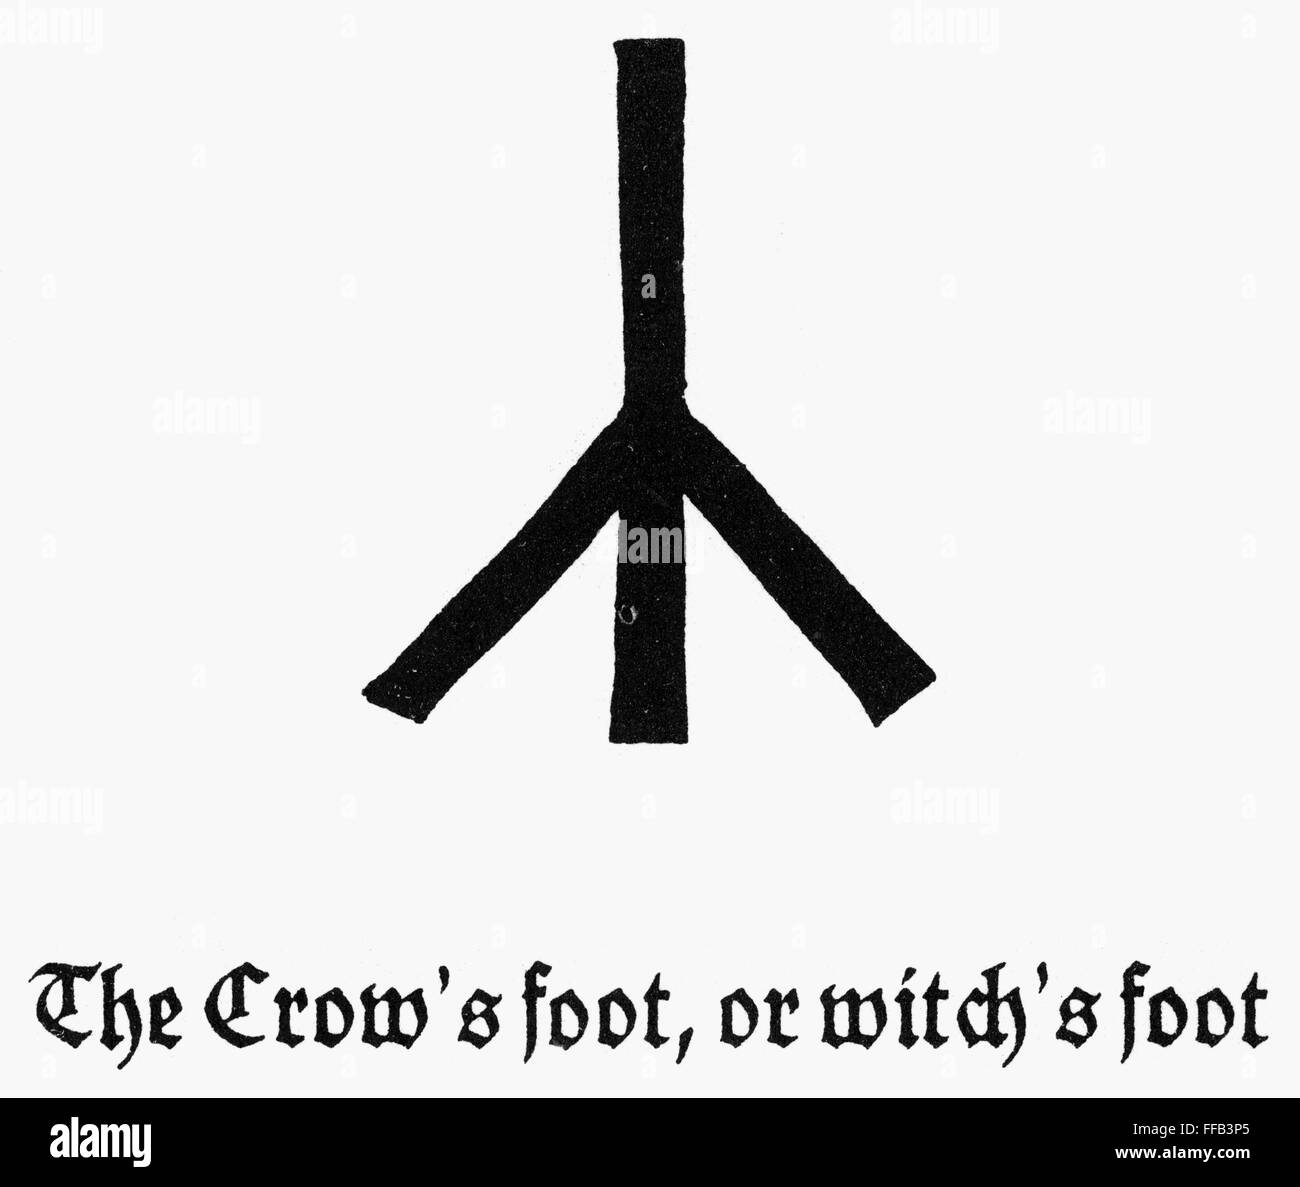 Symbols crows foot ncrows foot or witchs foot german stock symbols crows foot ncrows foot or witchs foot german house mark woodcut buycottarizona